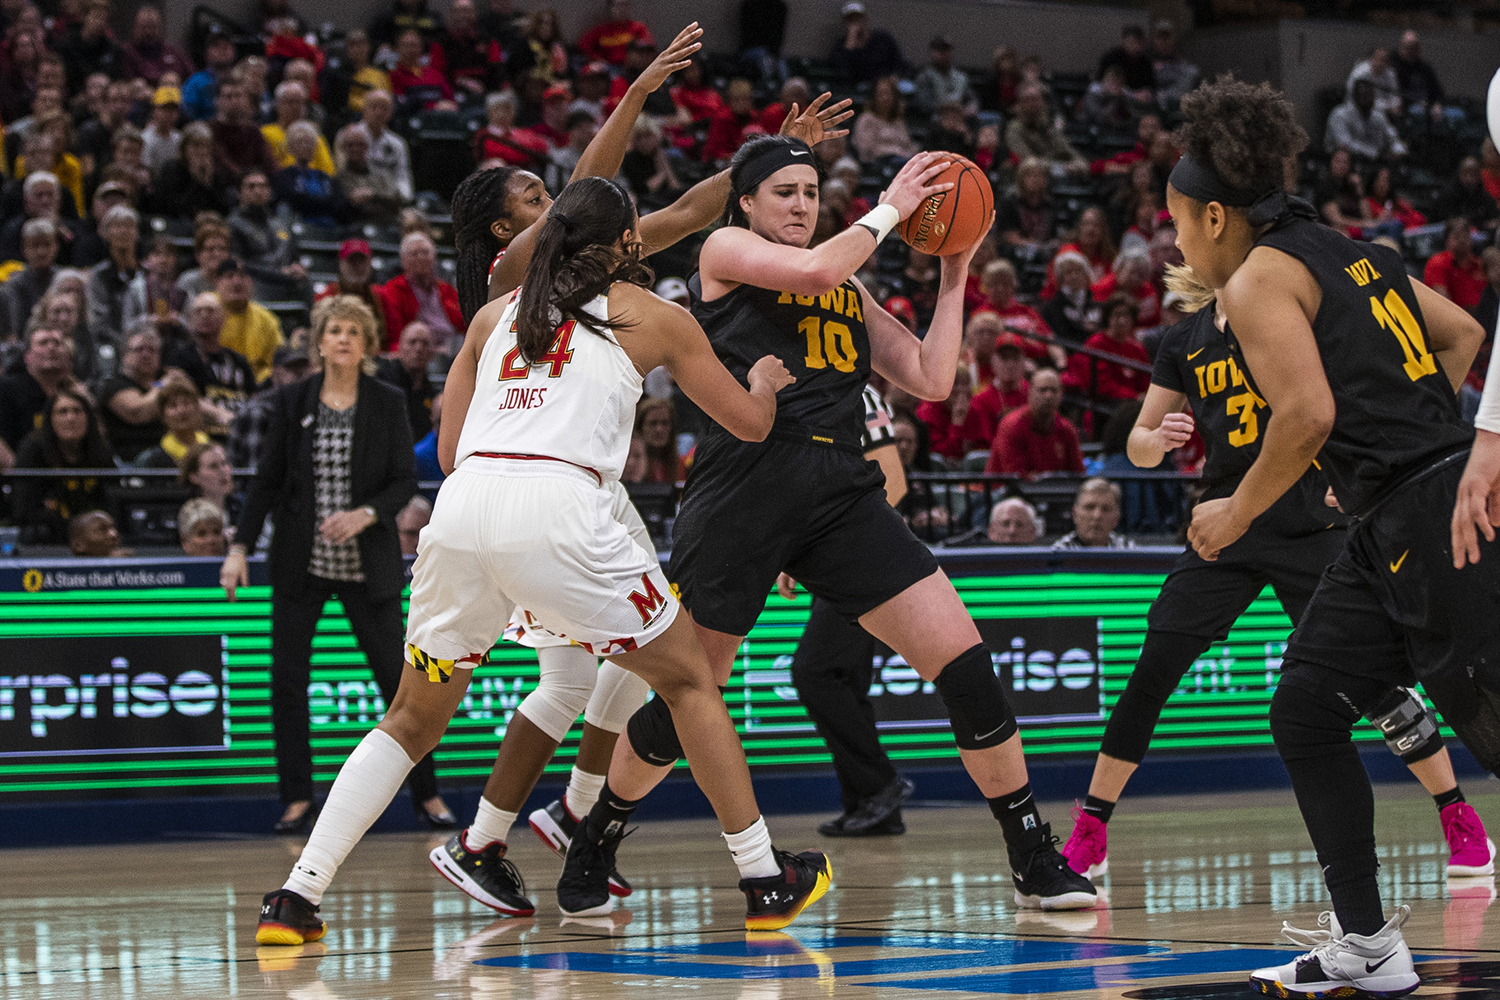 Iowa center Megan Gustafson keeps the ball away from Maryland players during the women's Big Ten Championship basketball game vs. Maryland at Bankers Life Fieldhouse on Sunday, March 10, 2019. The Hawkeyes defeated the Terrapins 90-76 and are the Big Ten champions.